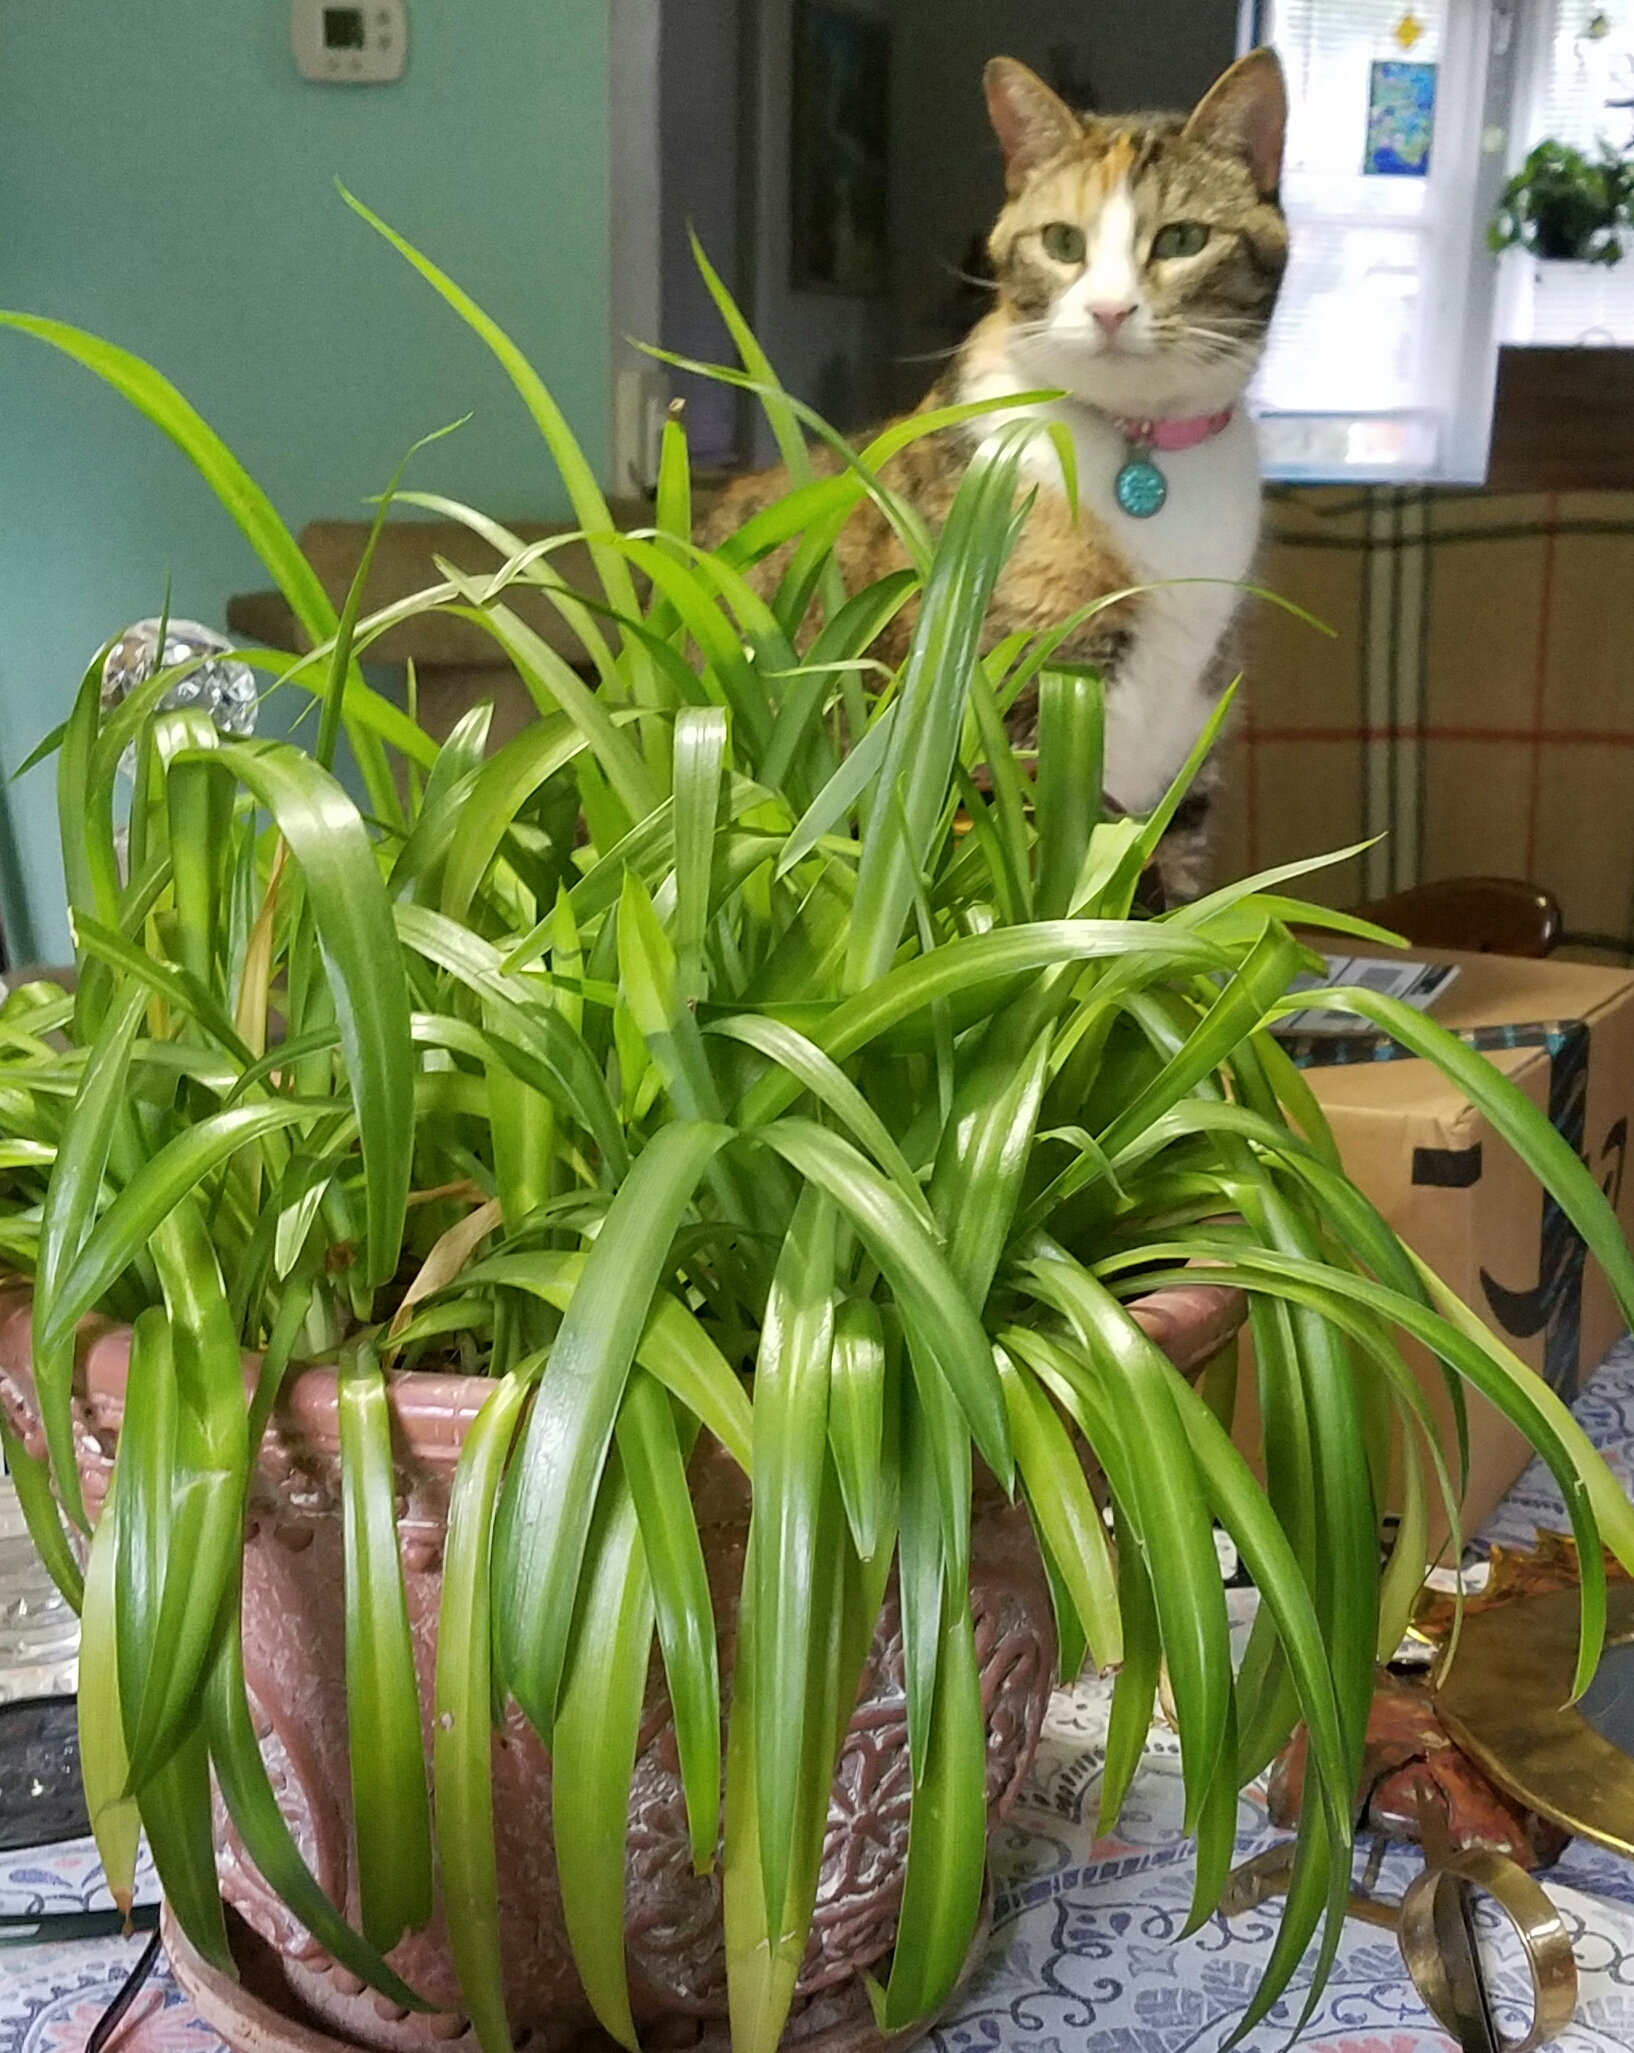 Green eyed girl daily feline wisdom for Spider plant cats